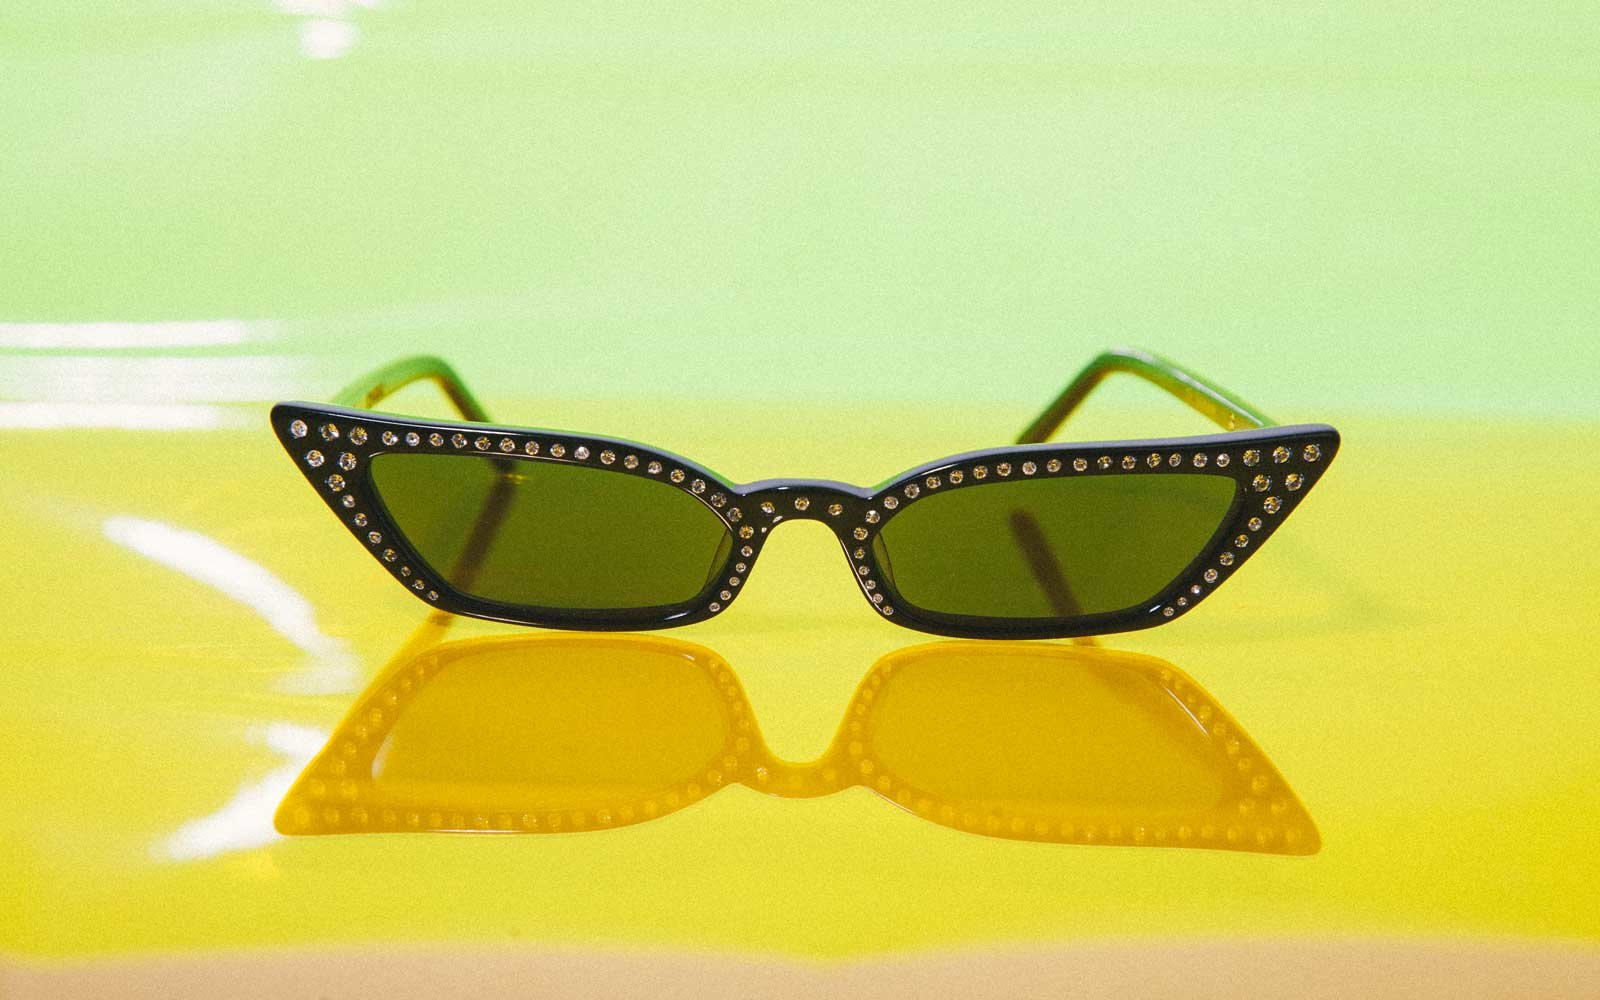 Micro Sunglasses Made by Poppy Lissiman, Le Skinny